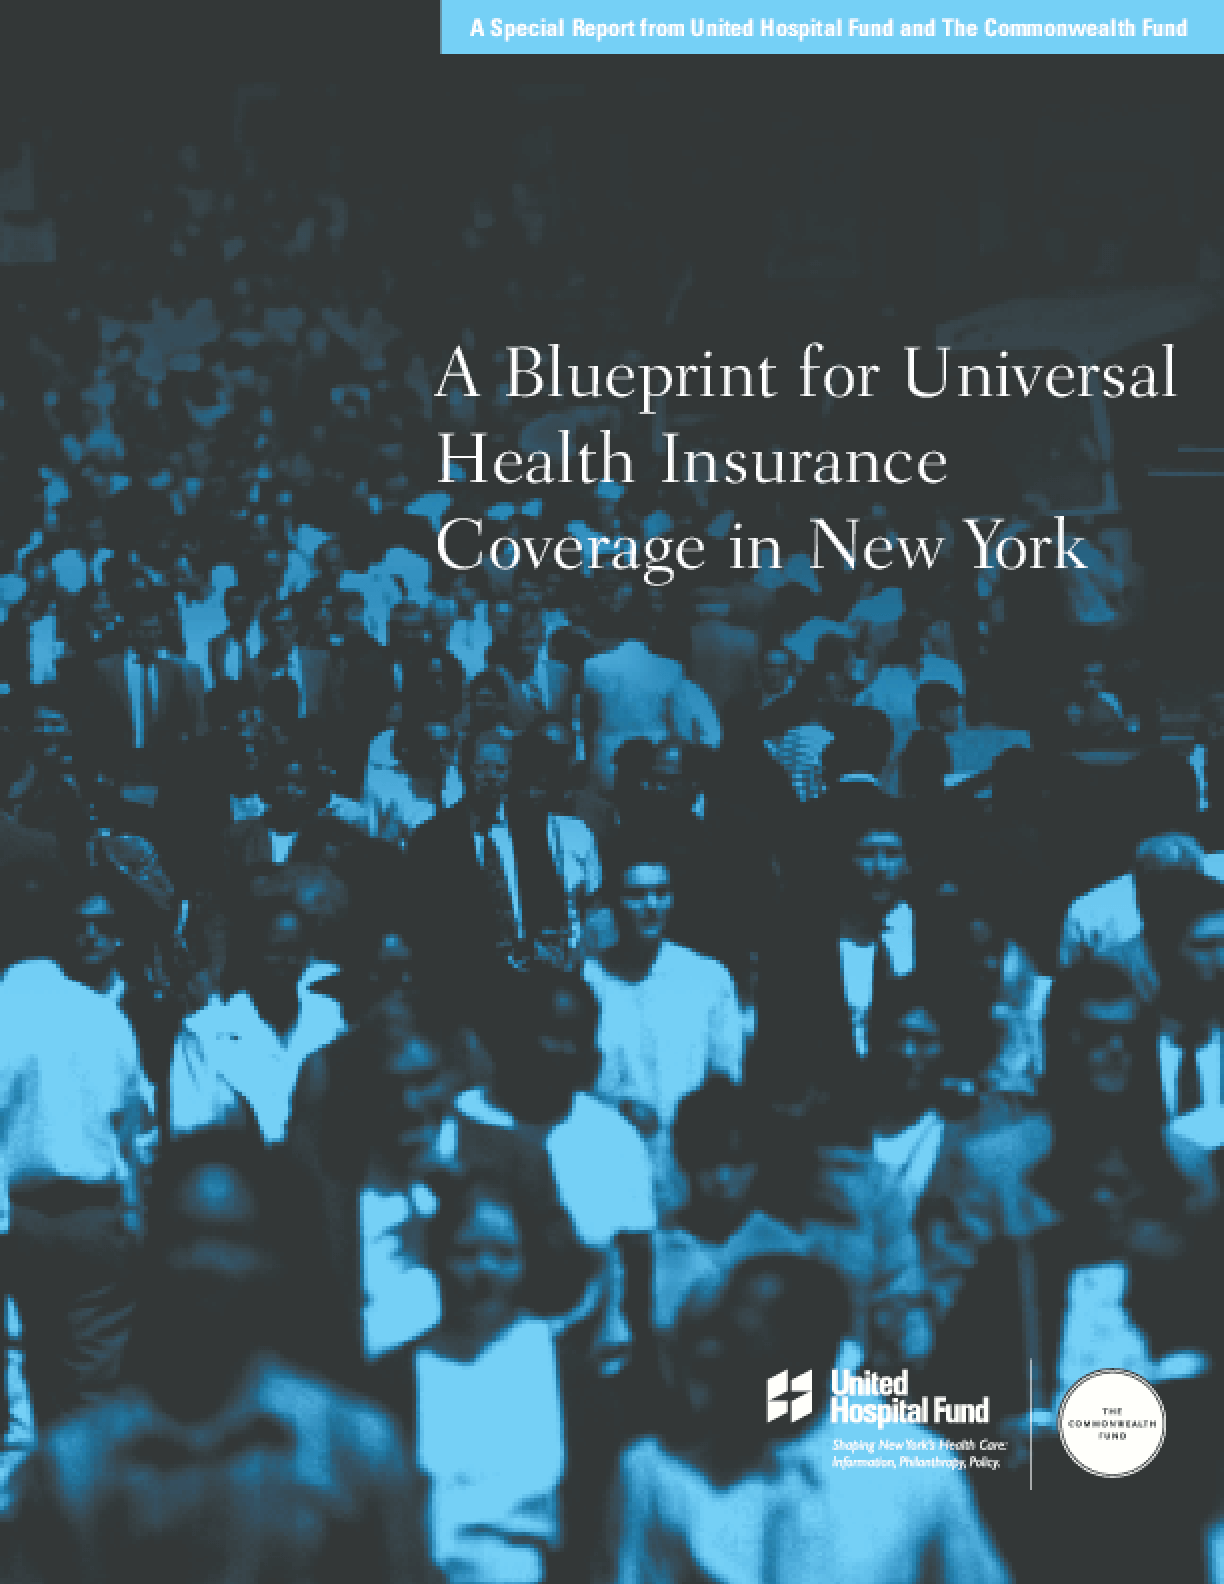 A Blueprint for Universal Health Insurance Coverage in New York